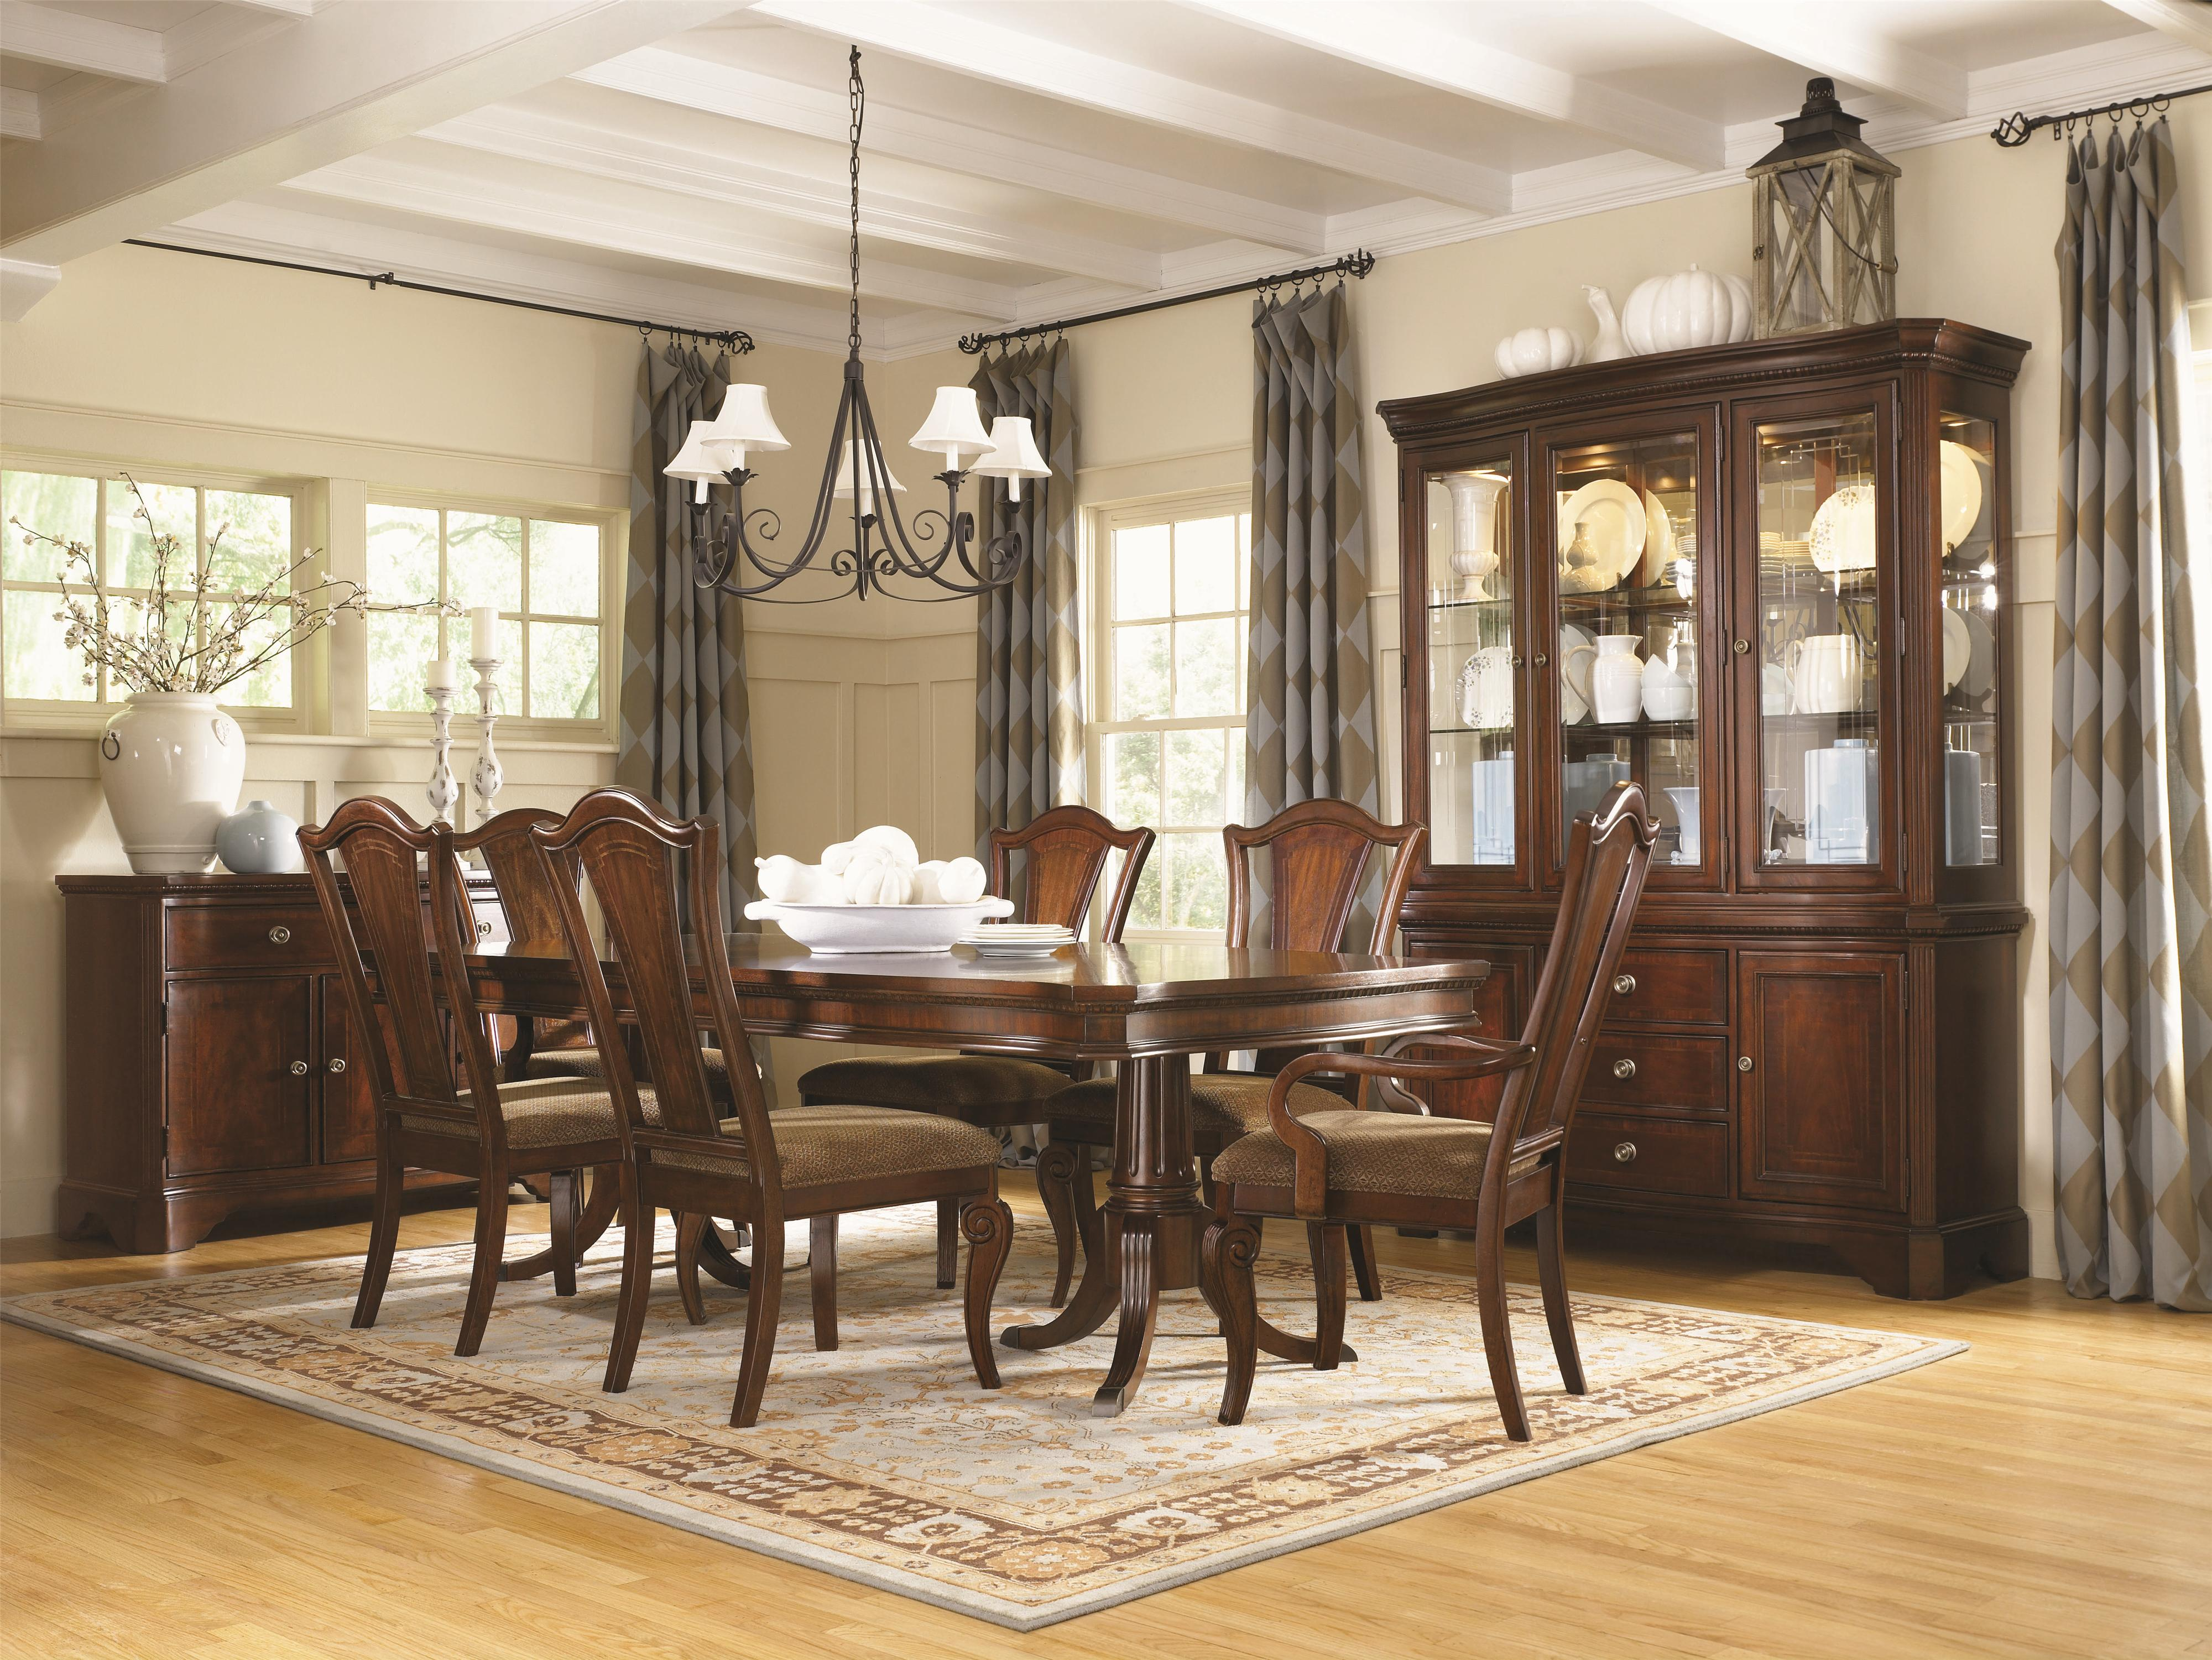 Superb American Furniture Louisville Ky #2: Furniture In Louisville Ky Dundee Together With Double Pedestal Dining